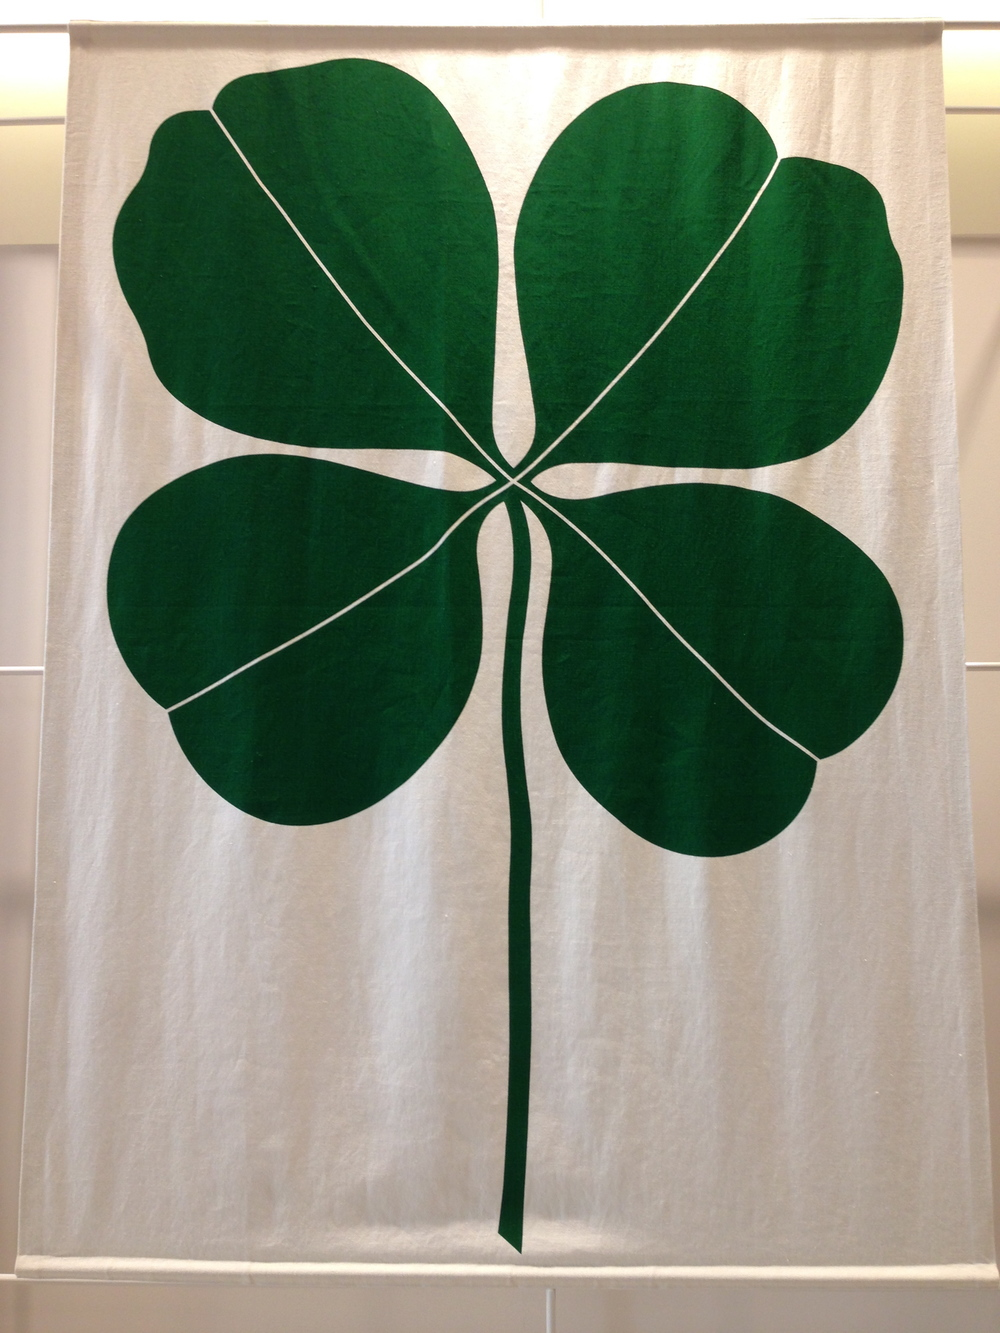 One of Girard's decorative panels with four leaf clover